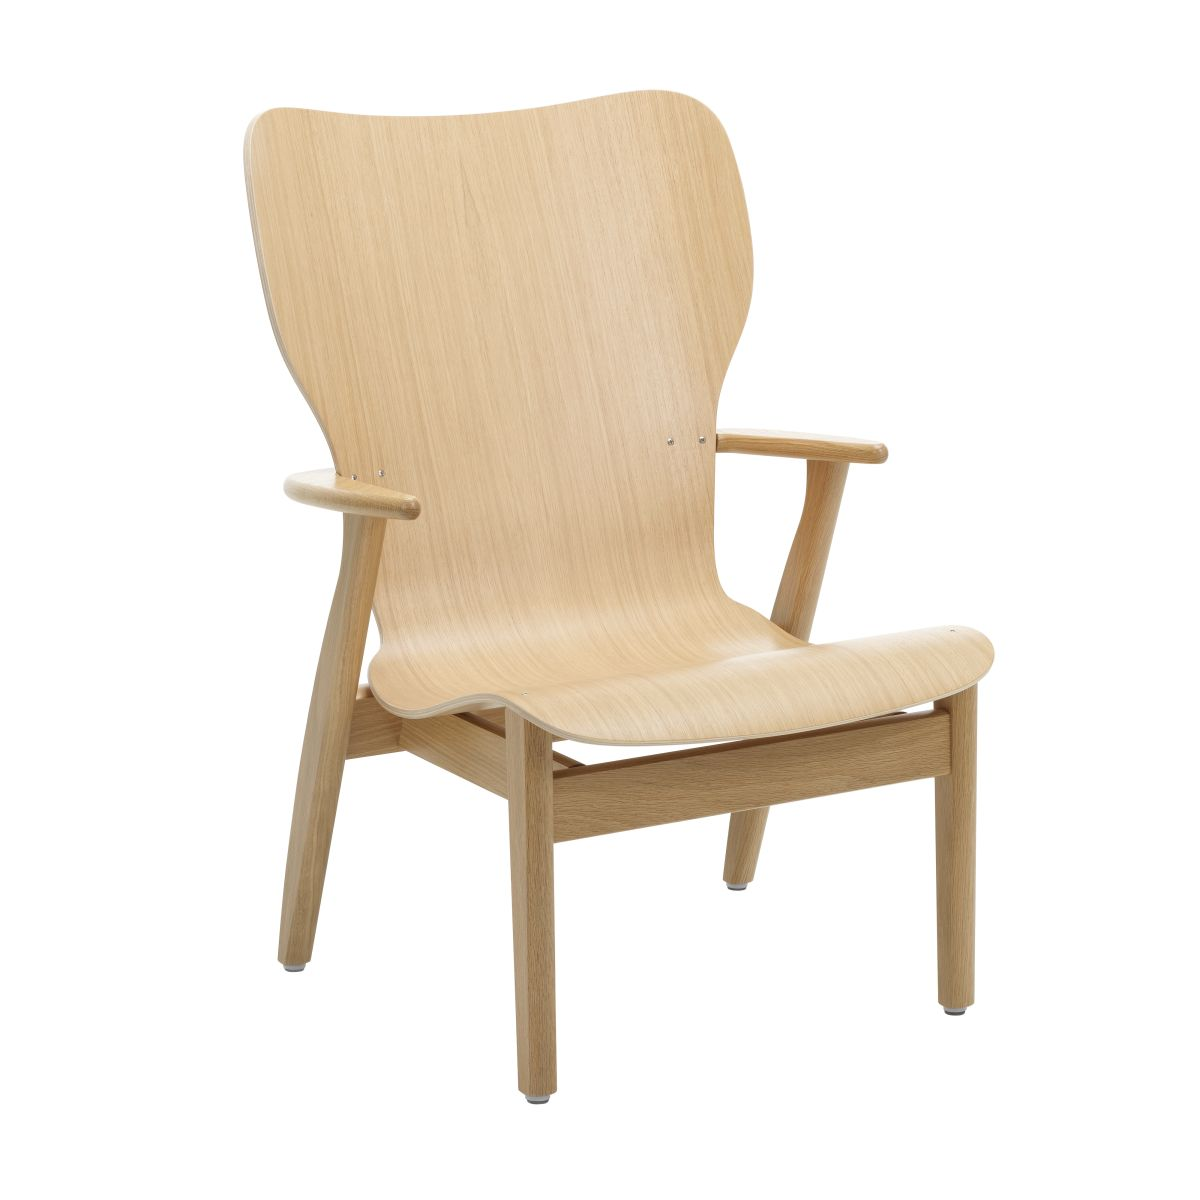 Domus-Lounge-Chair-oak-natural_F-2868262